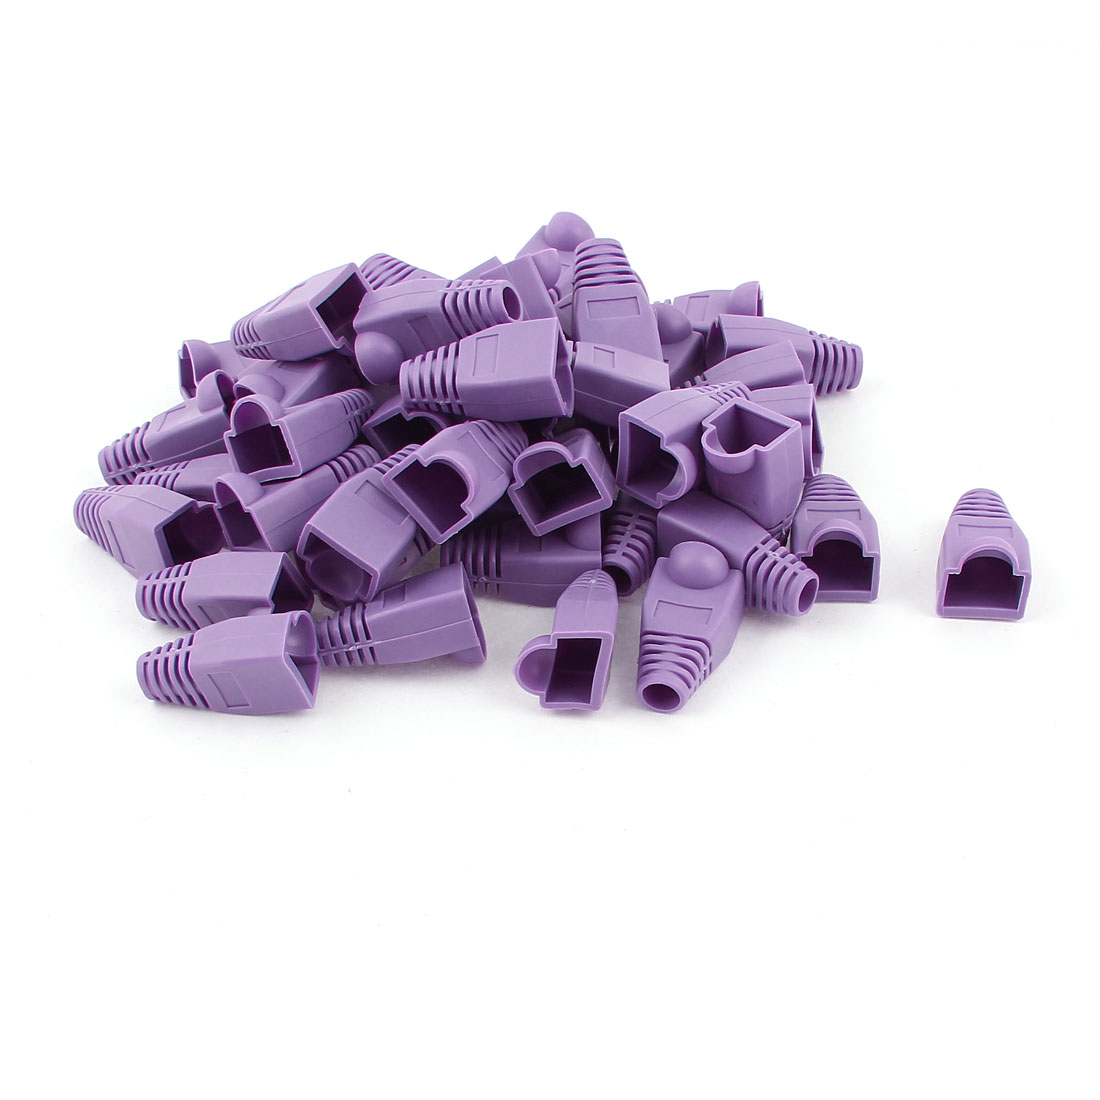 50 Pcs Computer Parts Purple Rubber RJ45 Connectors Boots Cover Cap